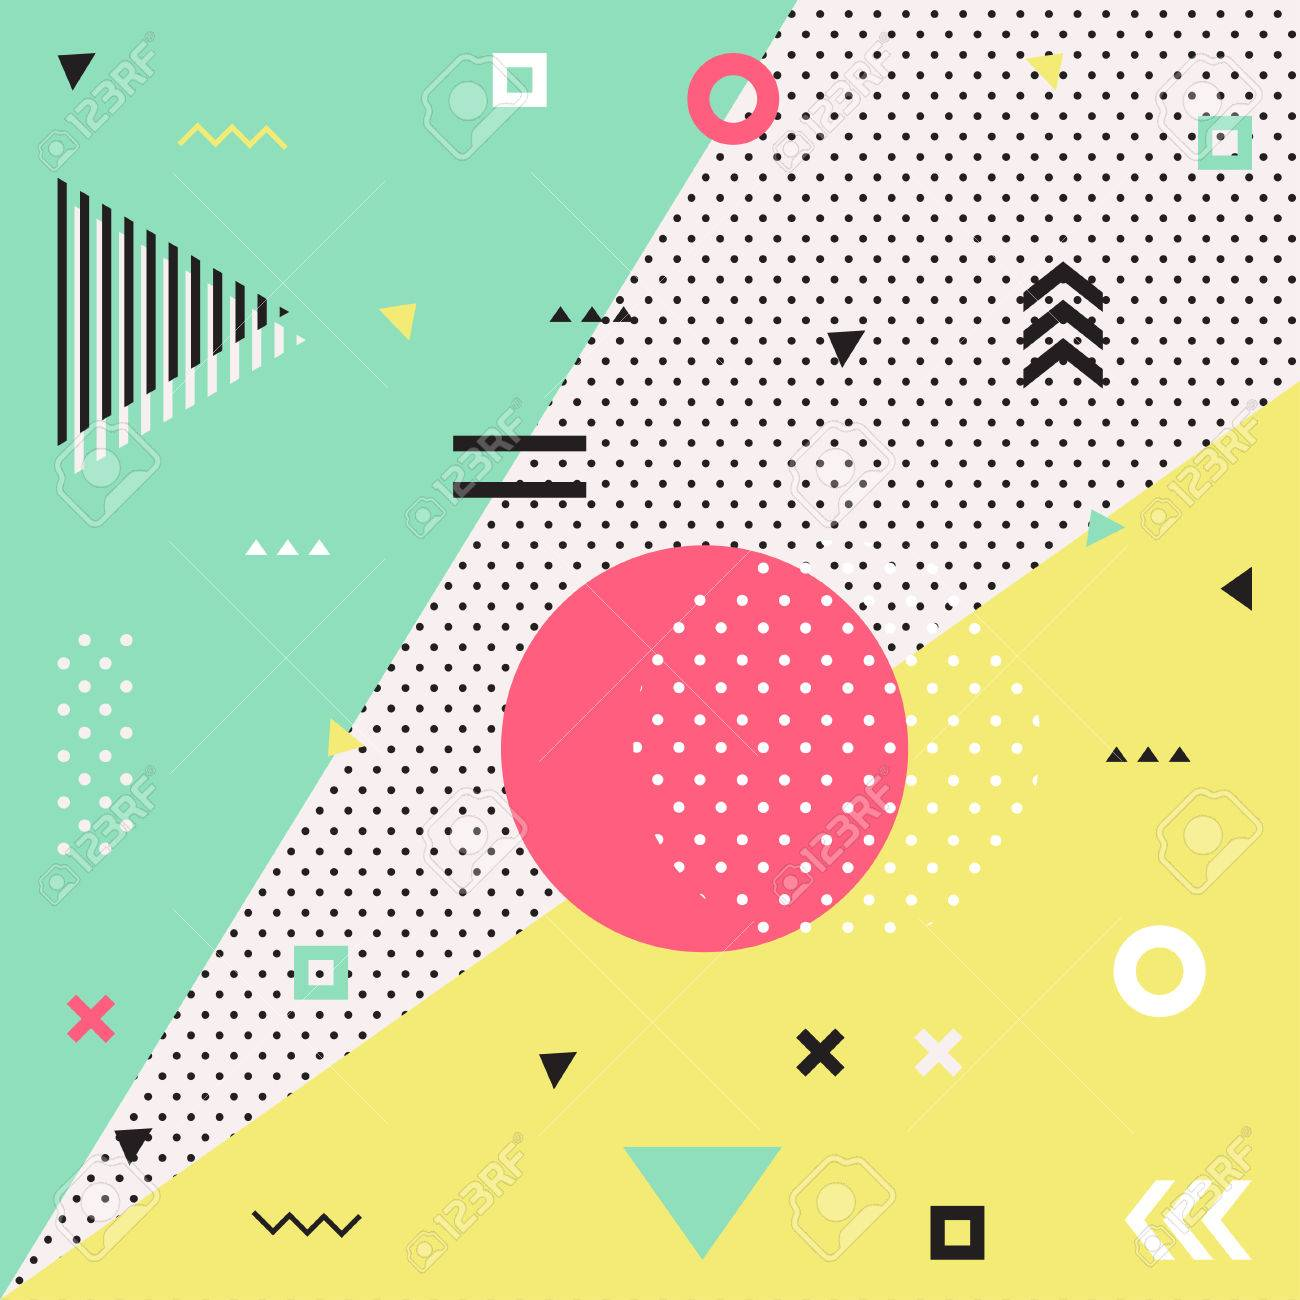 Retro style texture, pattern and geometric elements. Modern abstract design poster, cover, card design. - 58645323